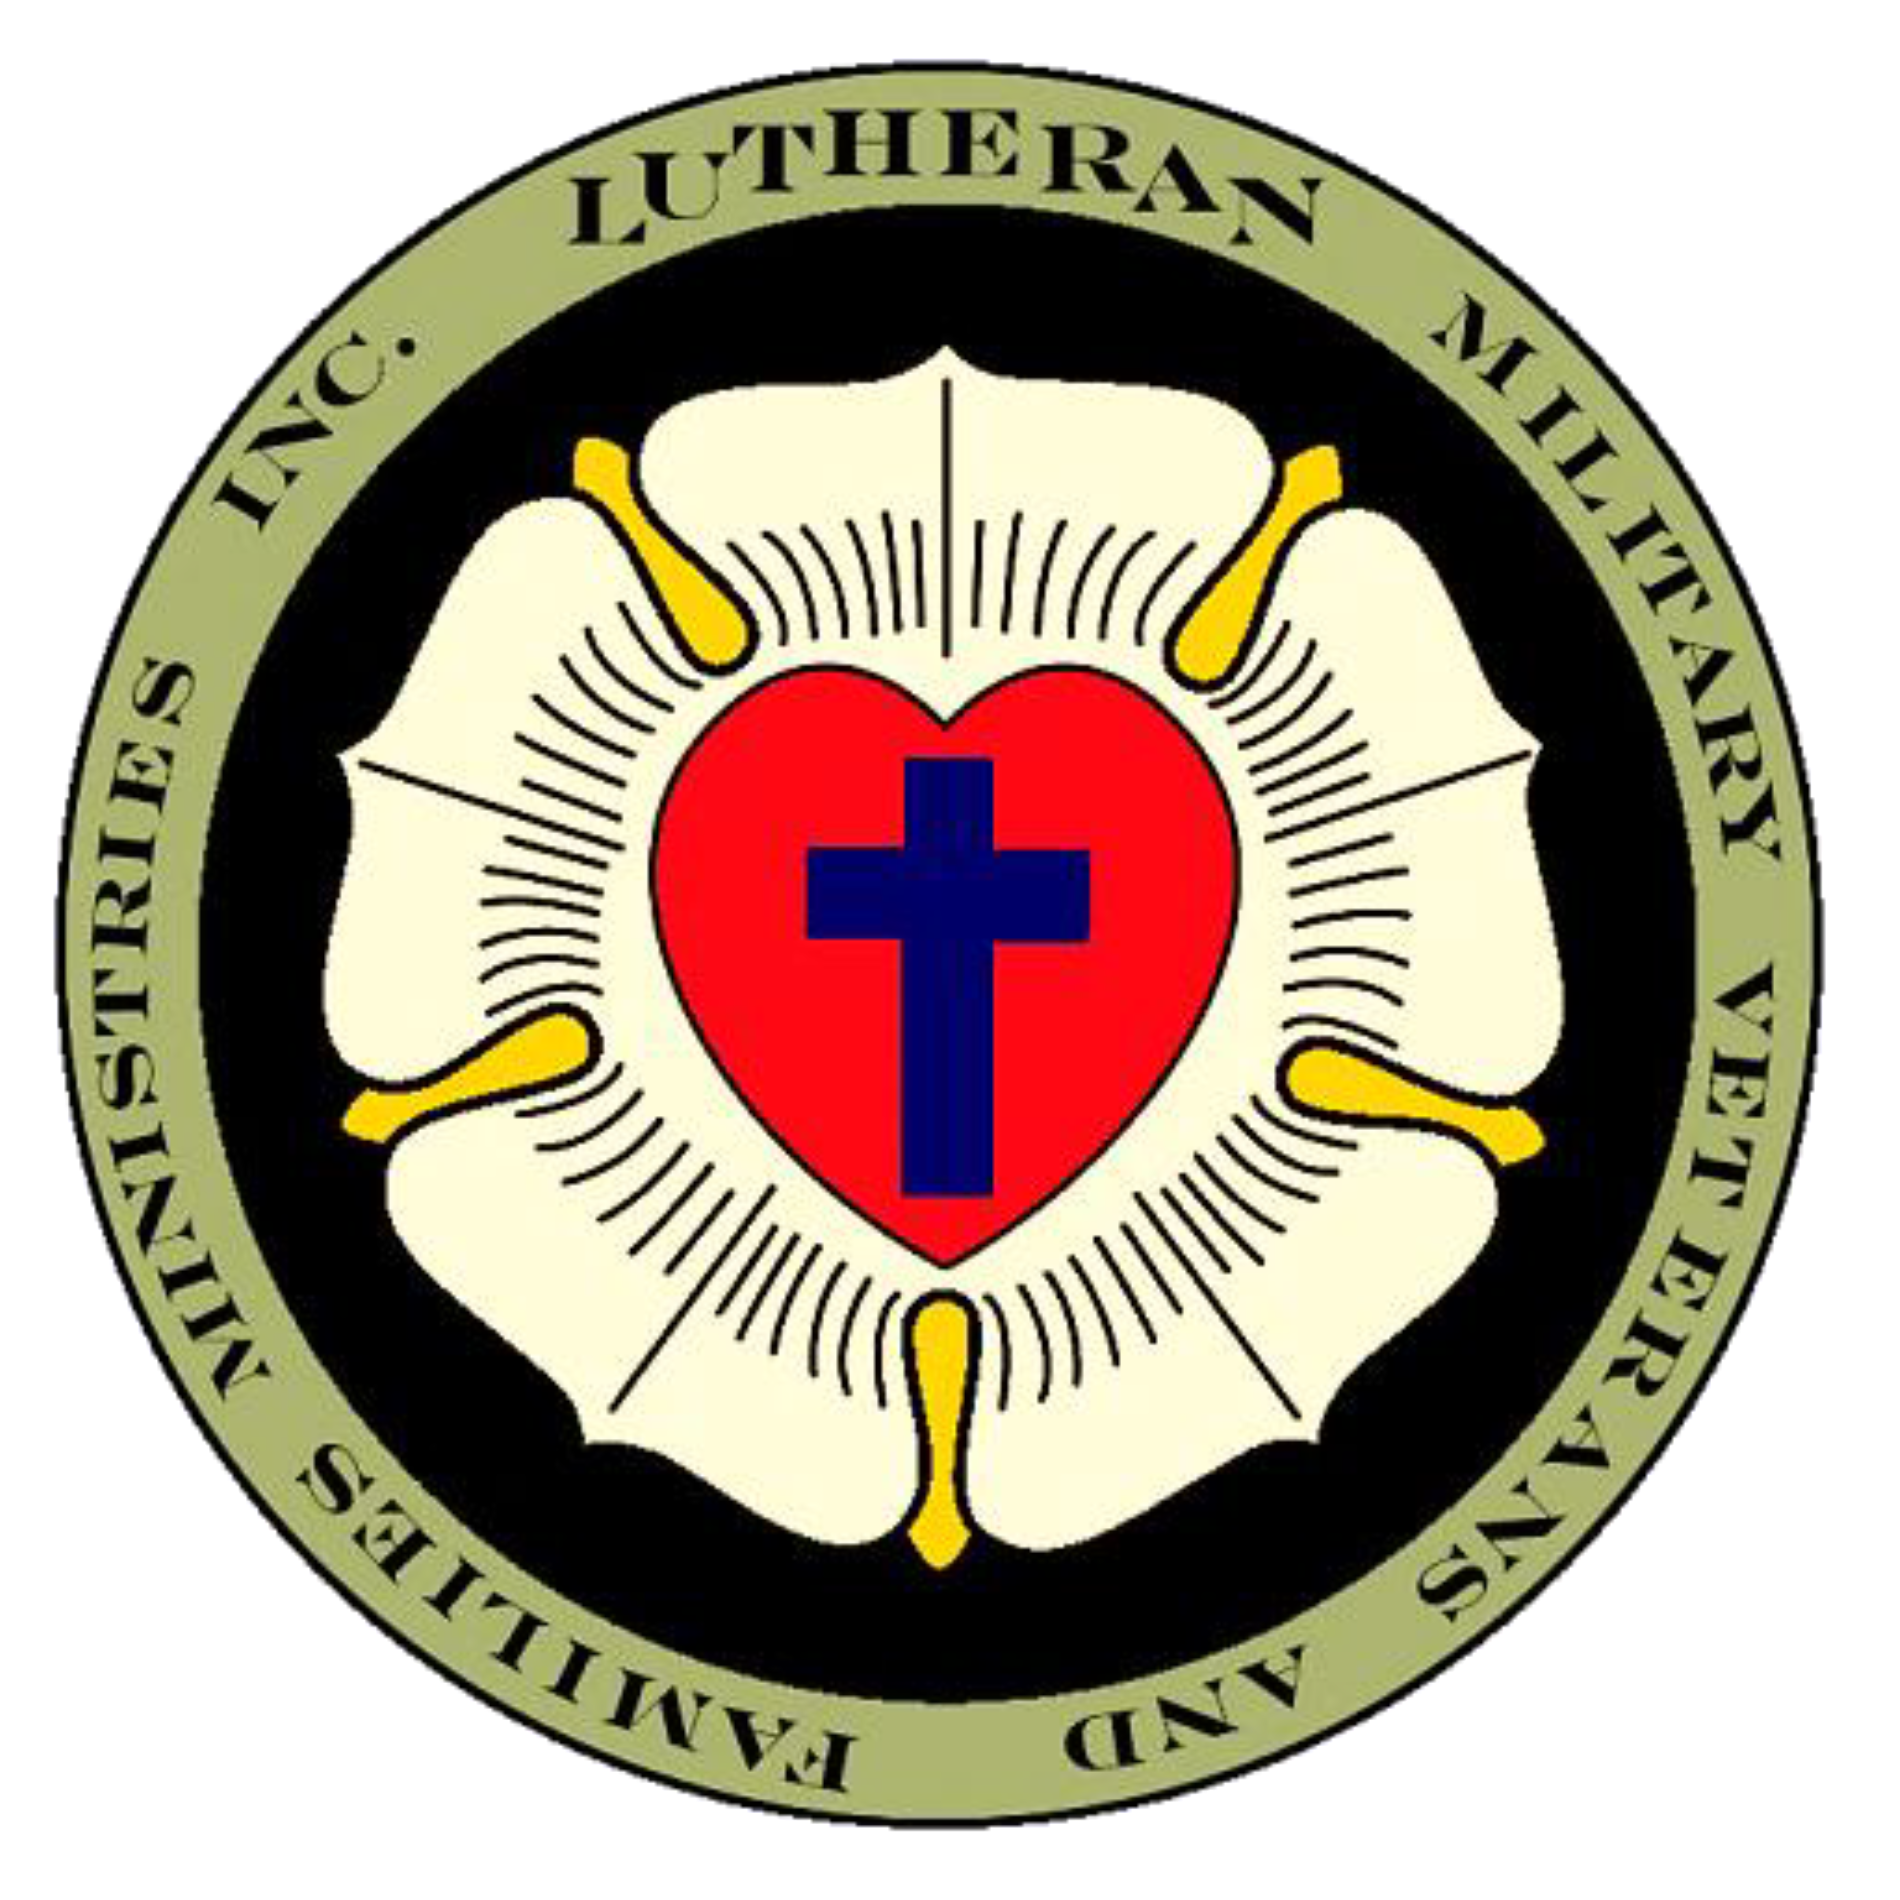 lutheran military veterans & family ministries